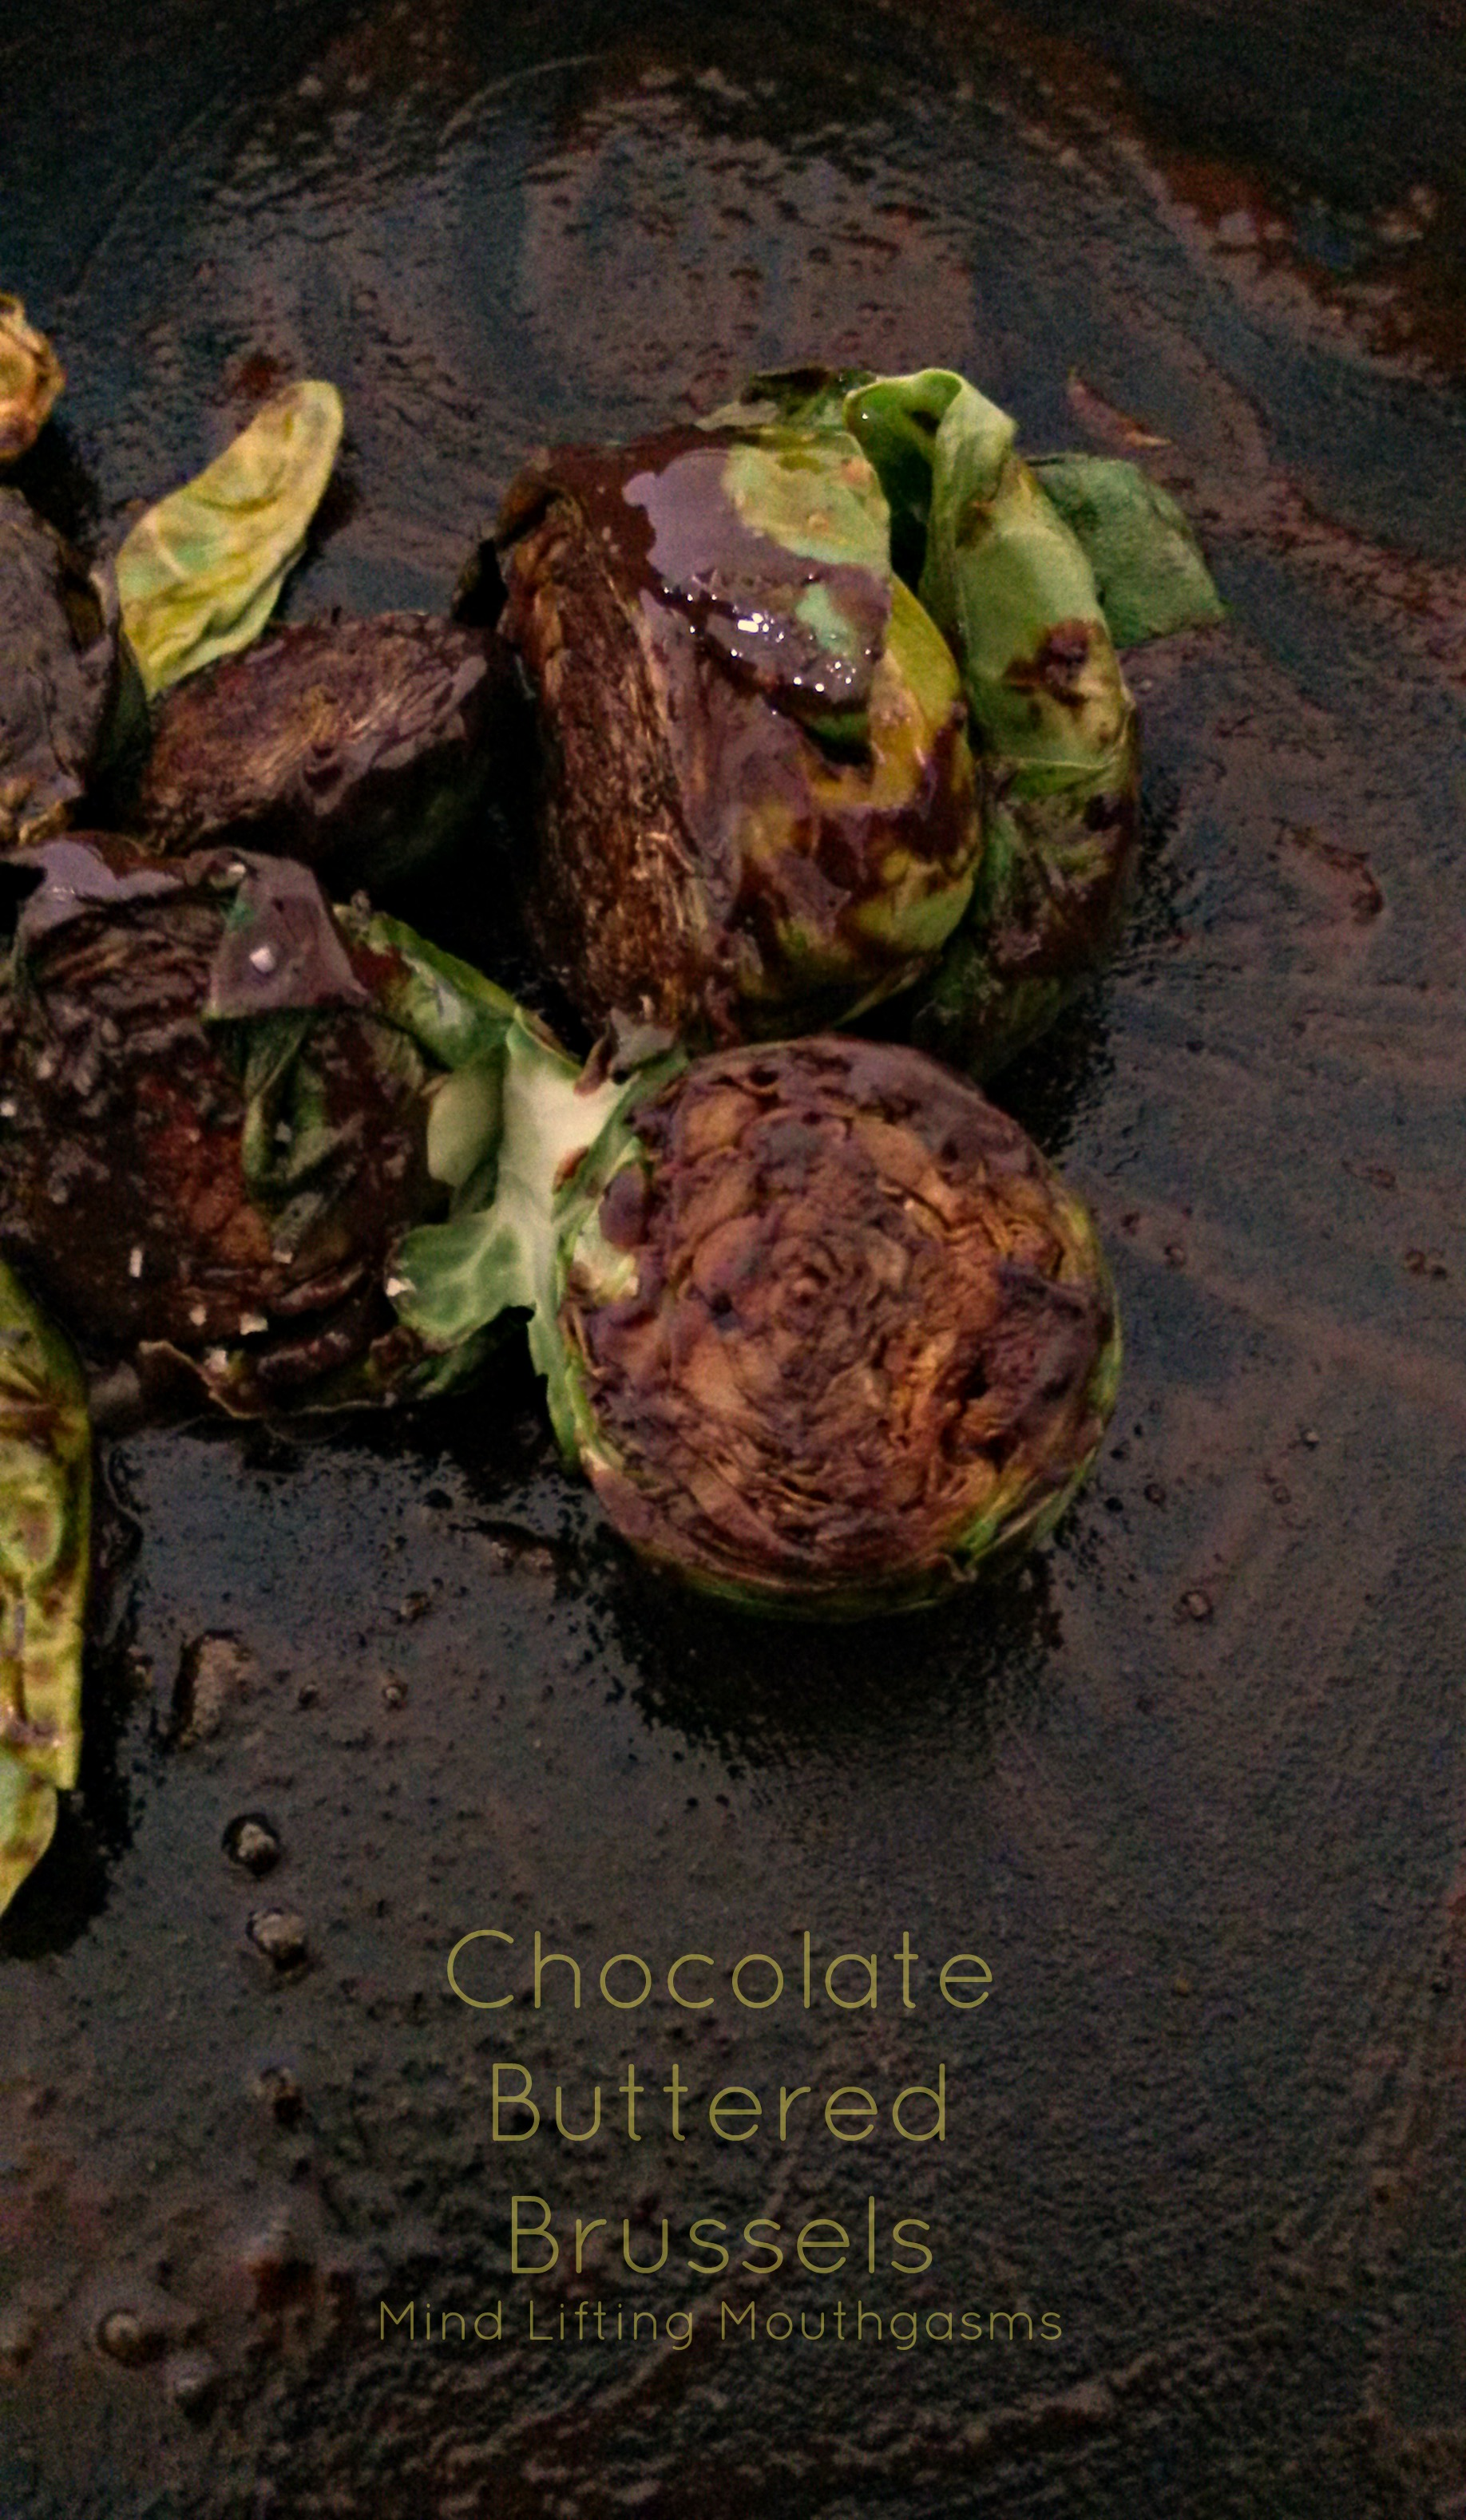 Final Chocolate Coated Brussels.jpg